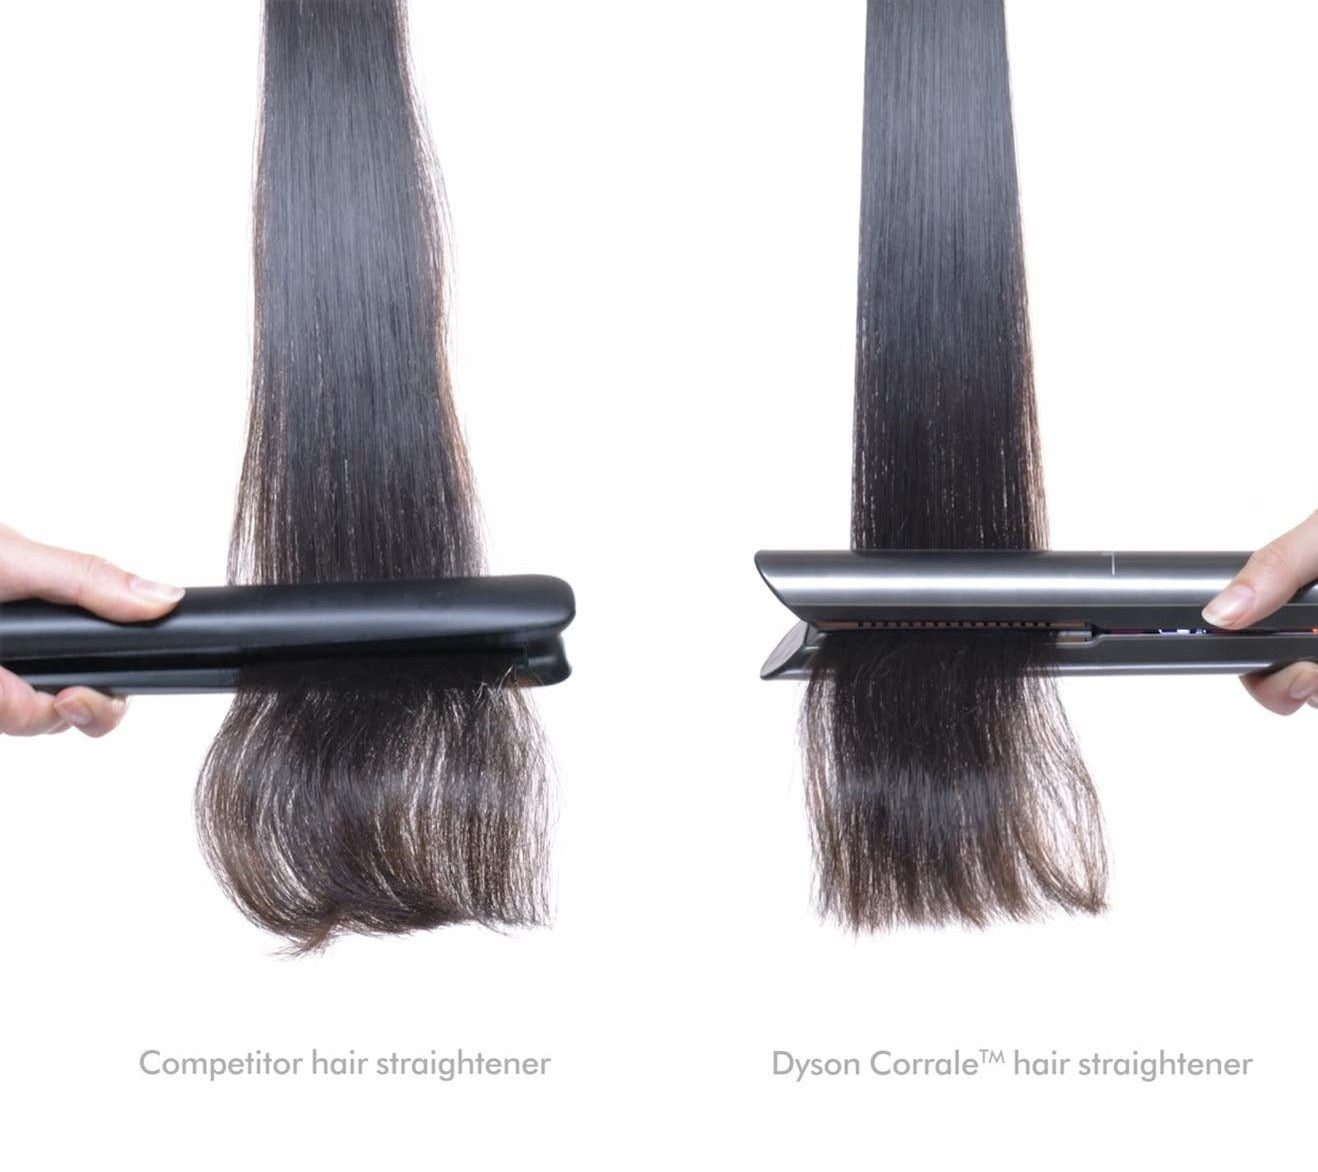 side by side of piece of hair being straightened with a competitor straightener versus Dyson, with the Dyson gathering the hair together more neatly